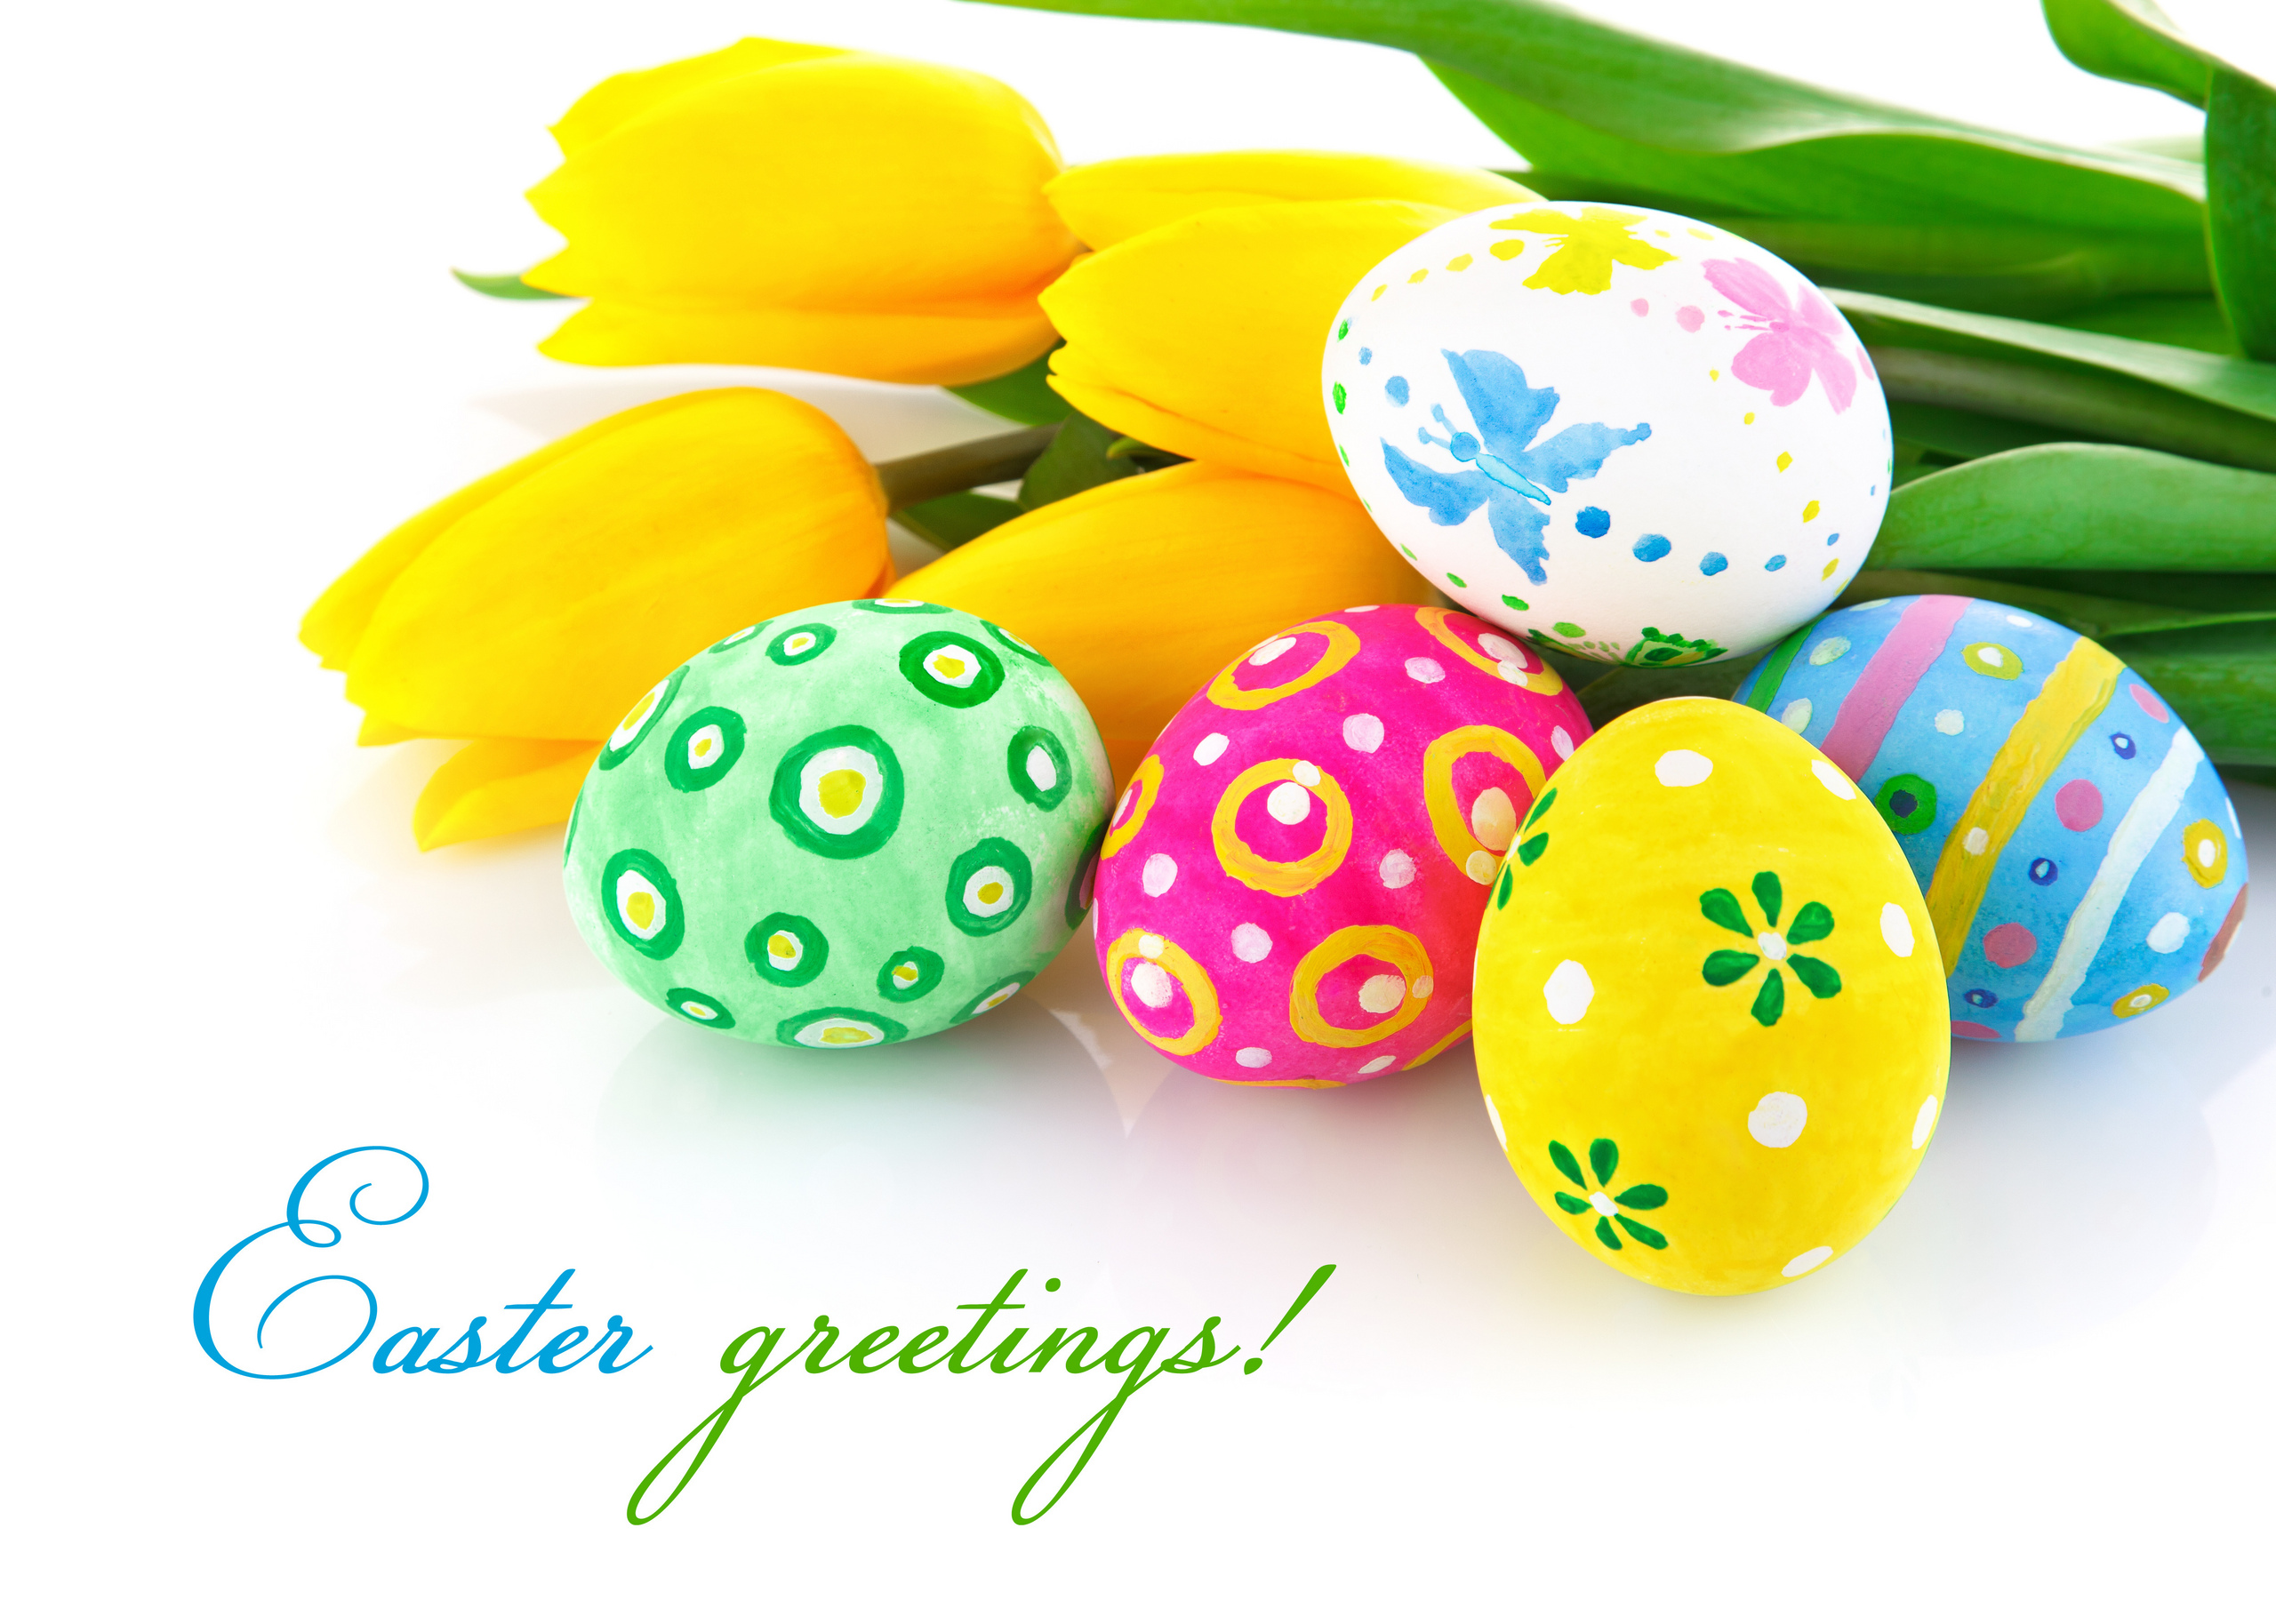 Easter images Easter greeting card HD wallpaper and background 2560x1827